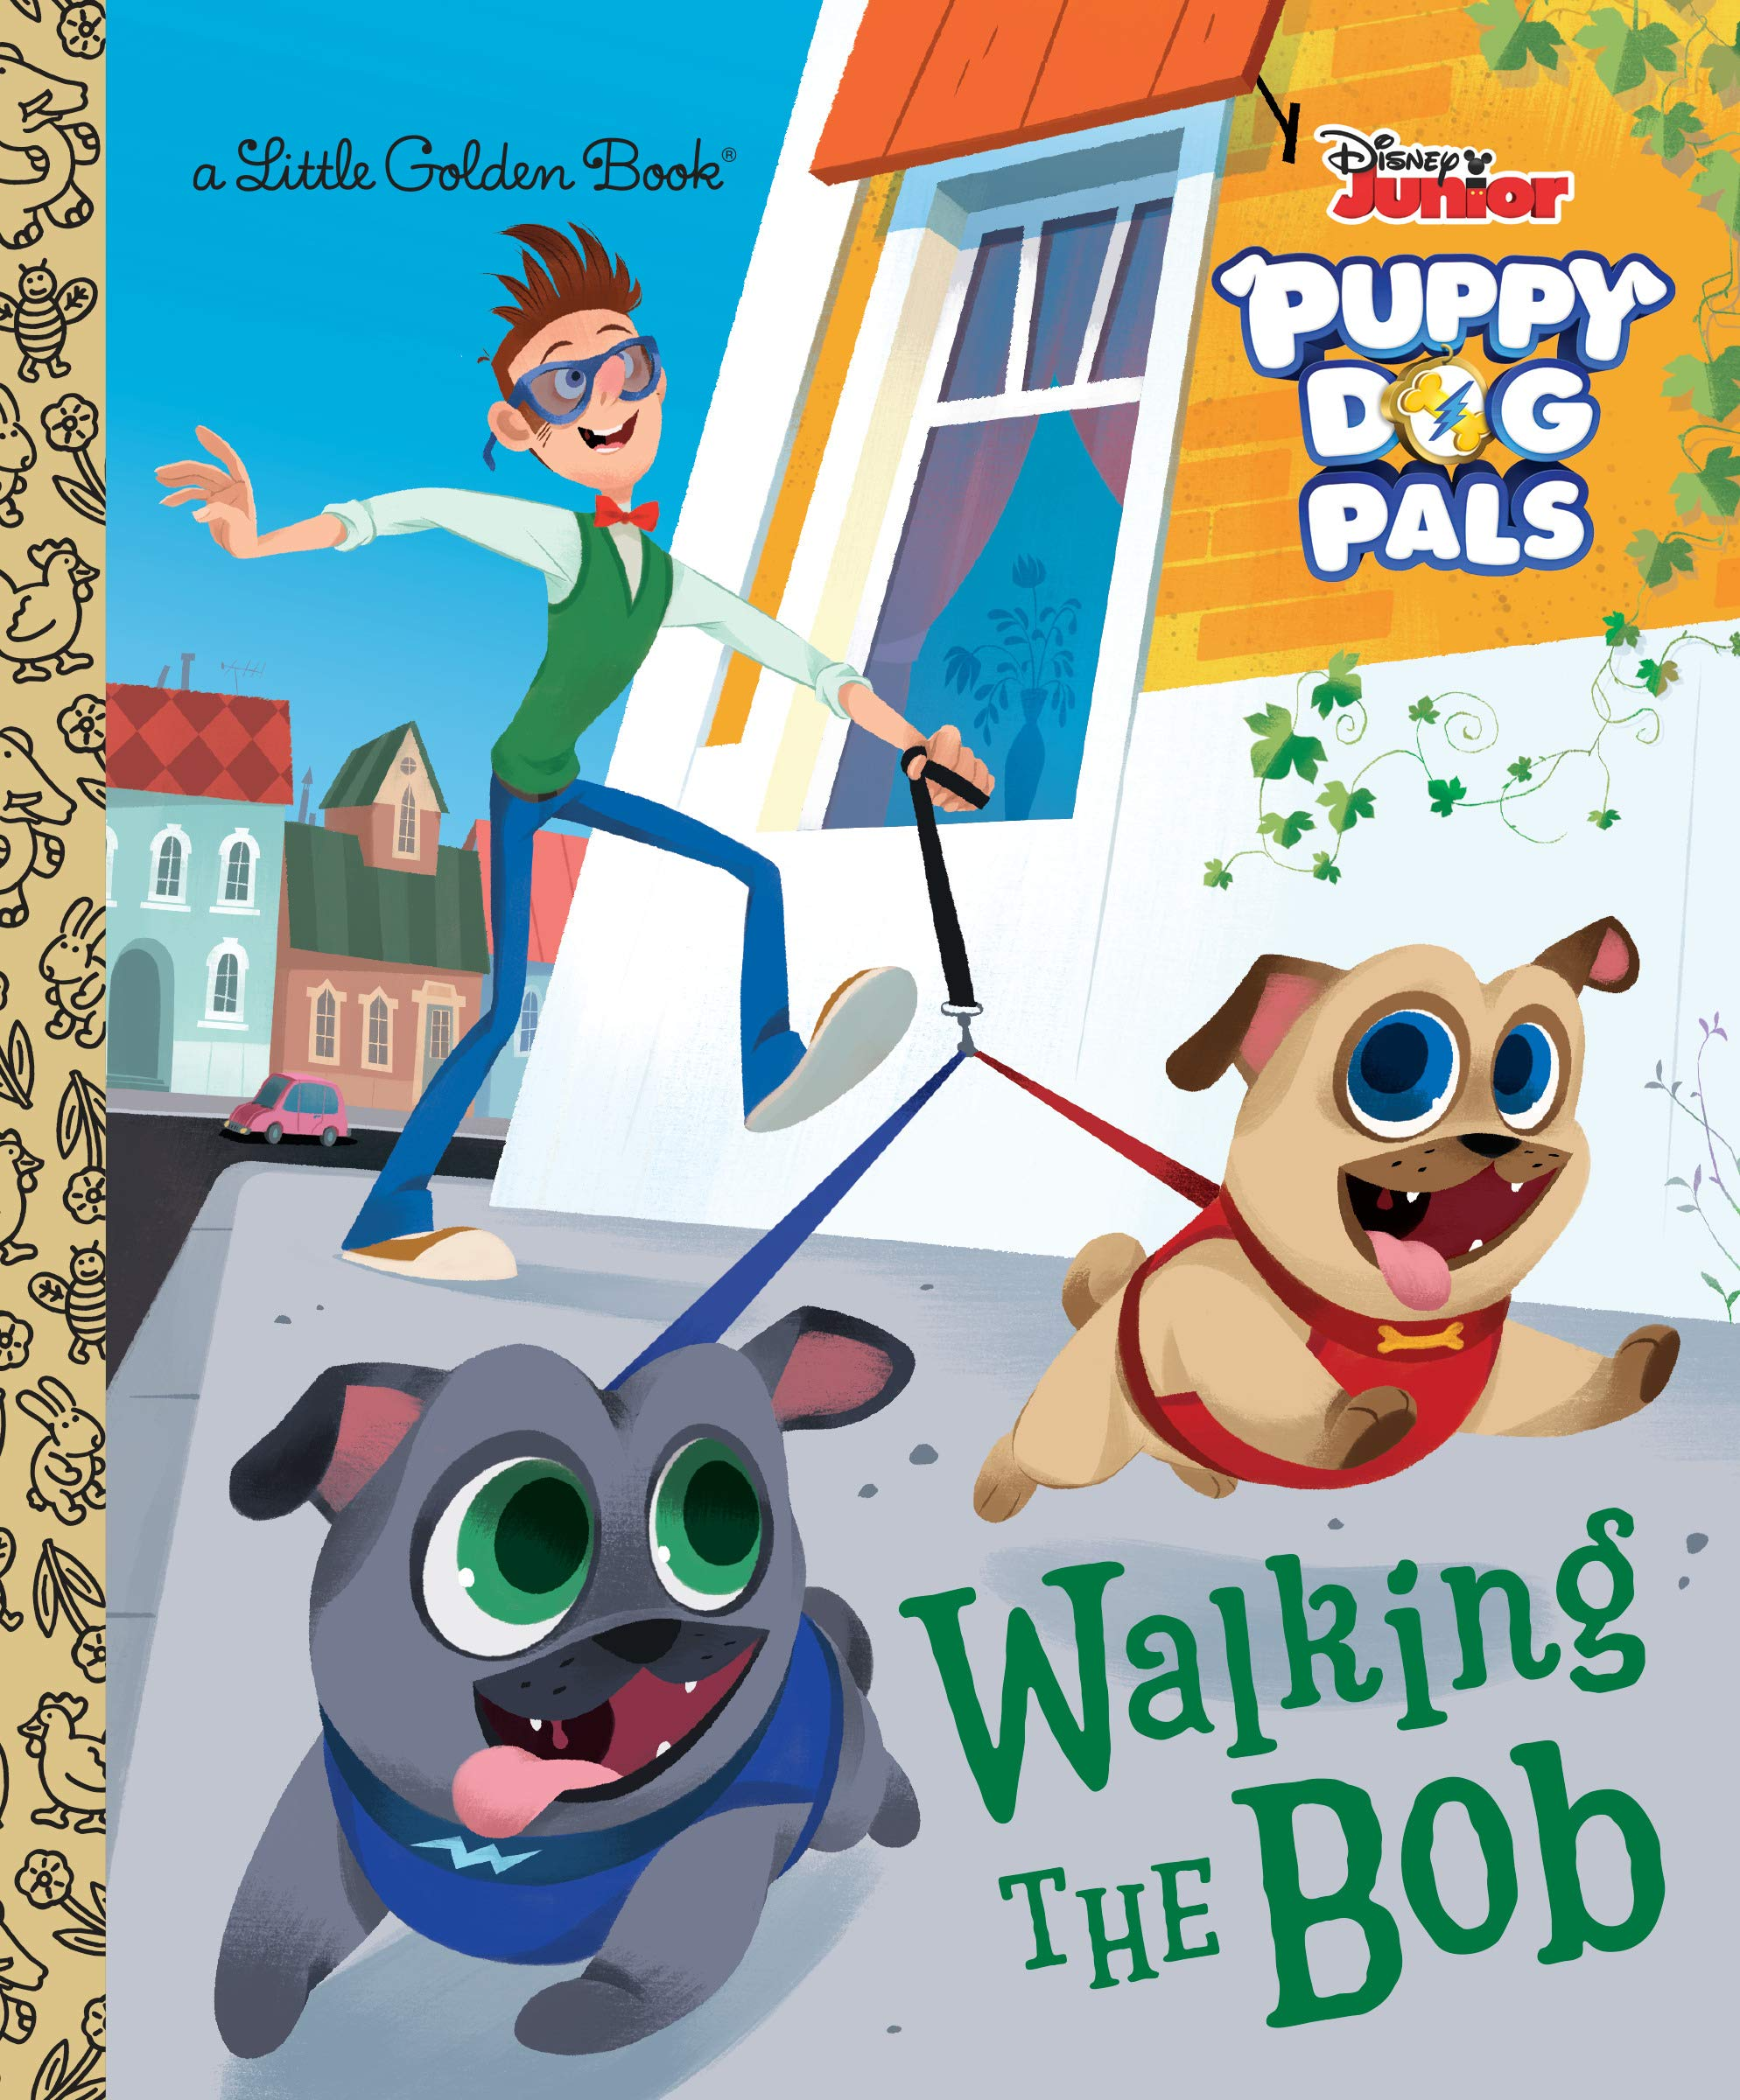 Walking the Bob (Disney Junior Puppy Dog Pals) (Little Golden Book)  Hardcover – July 2, 2019